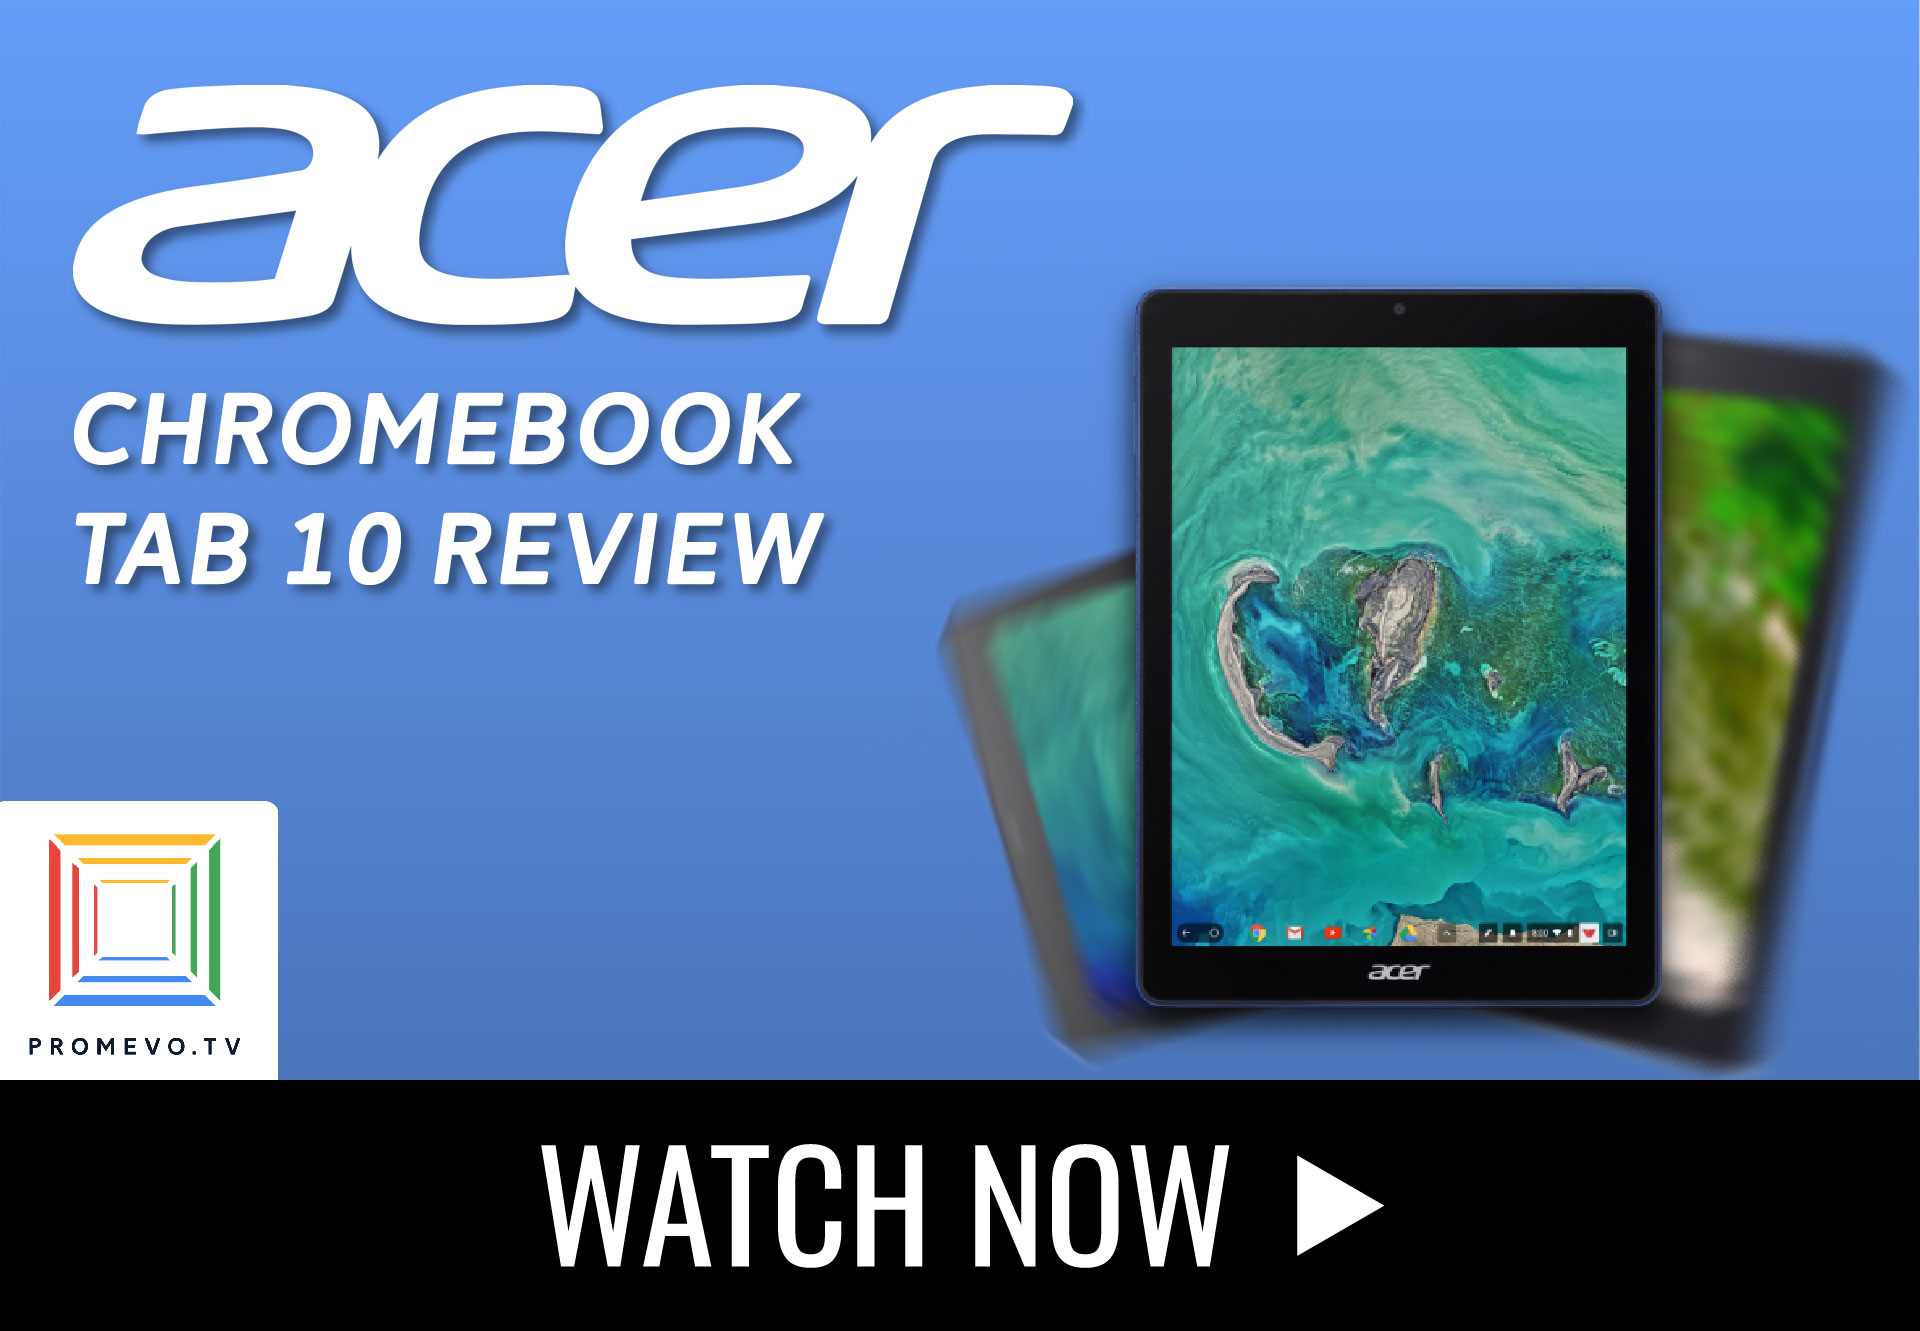 Promevo.TV Reviews: Acer Chromebook Tab 10